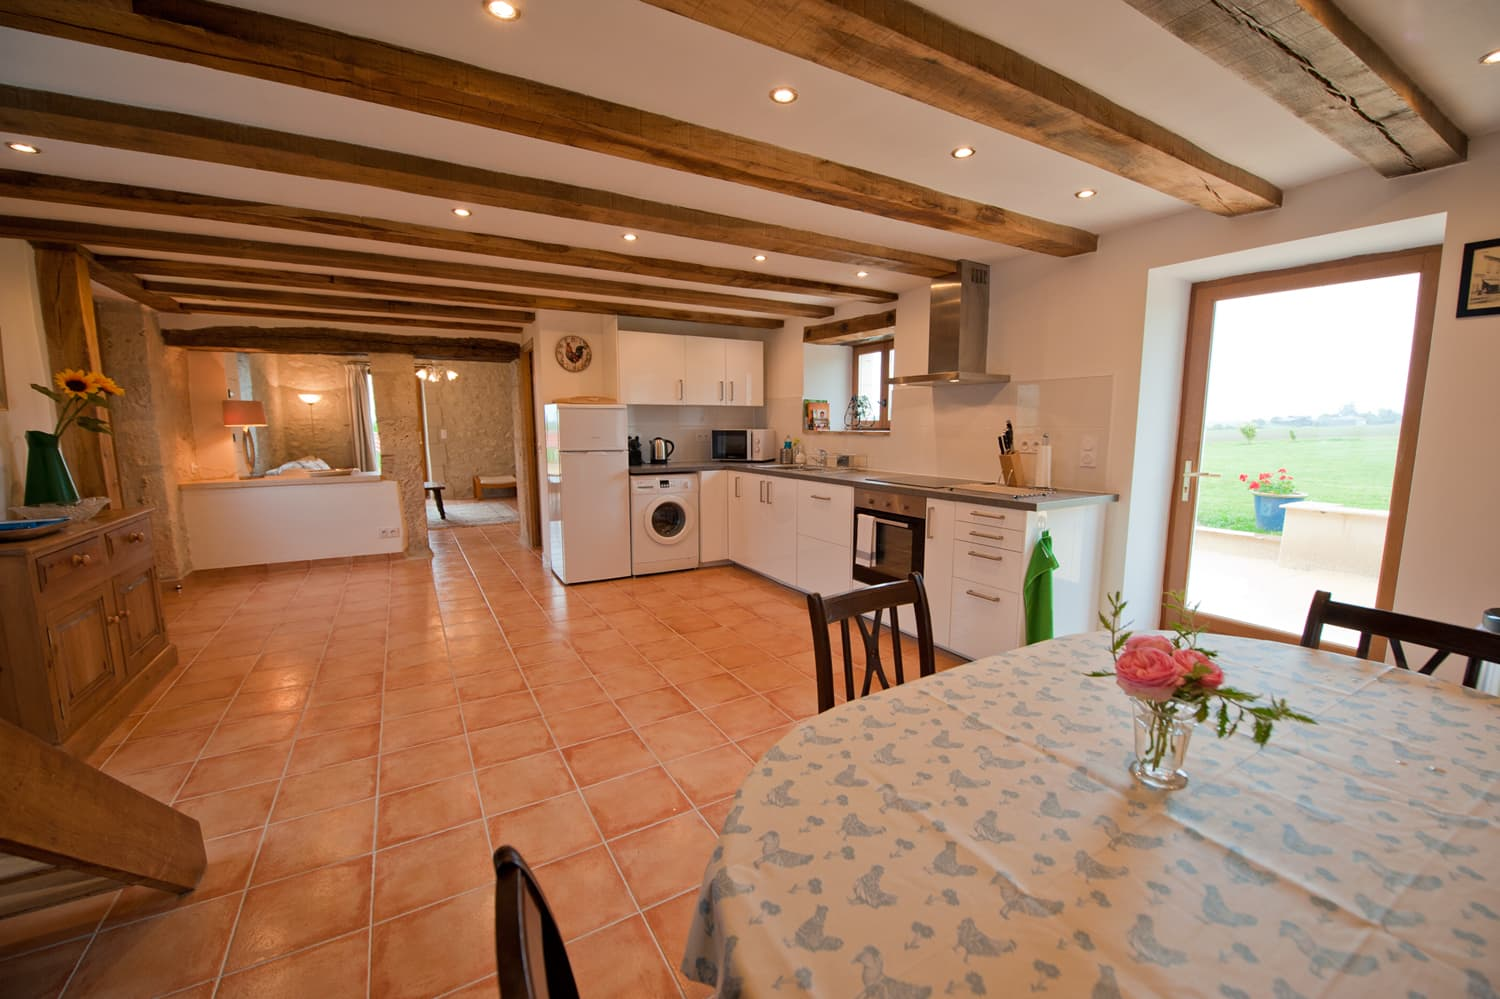 Kitchen and dining room in South West France holiday home